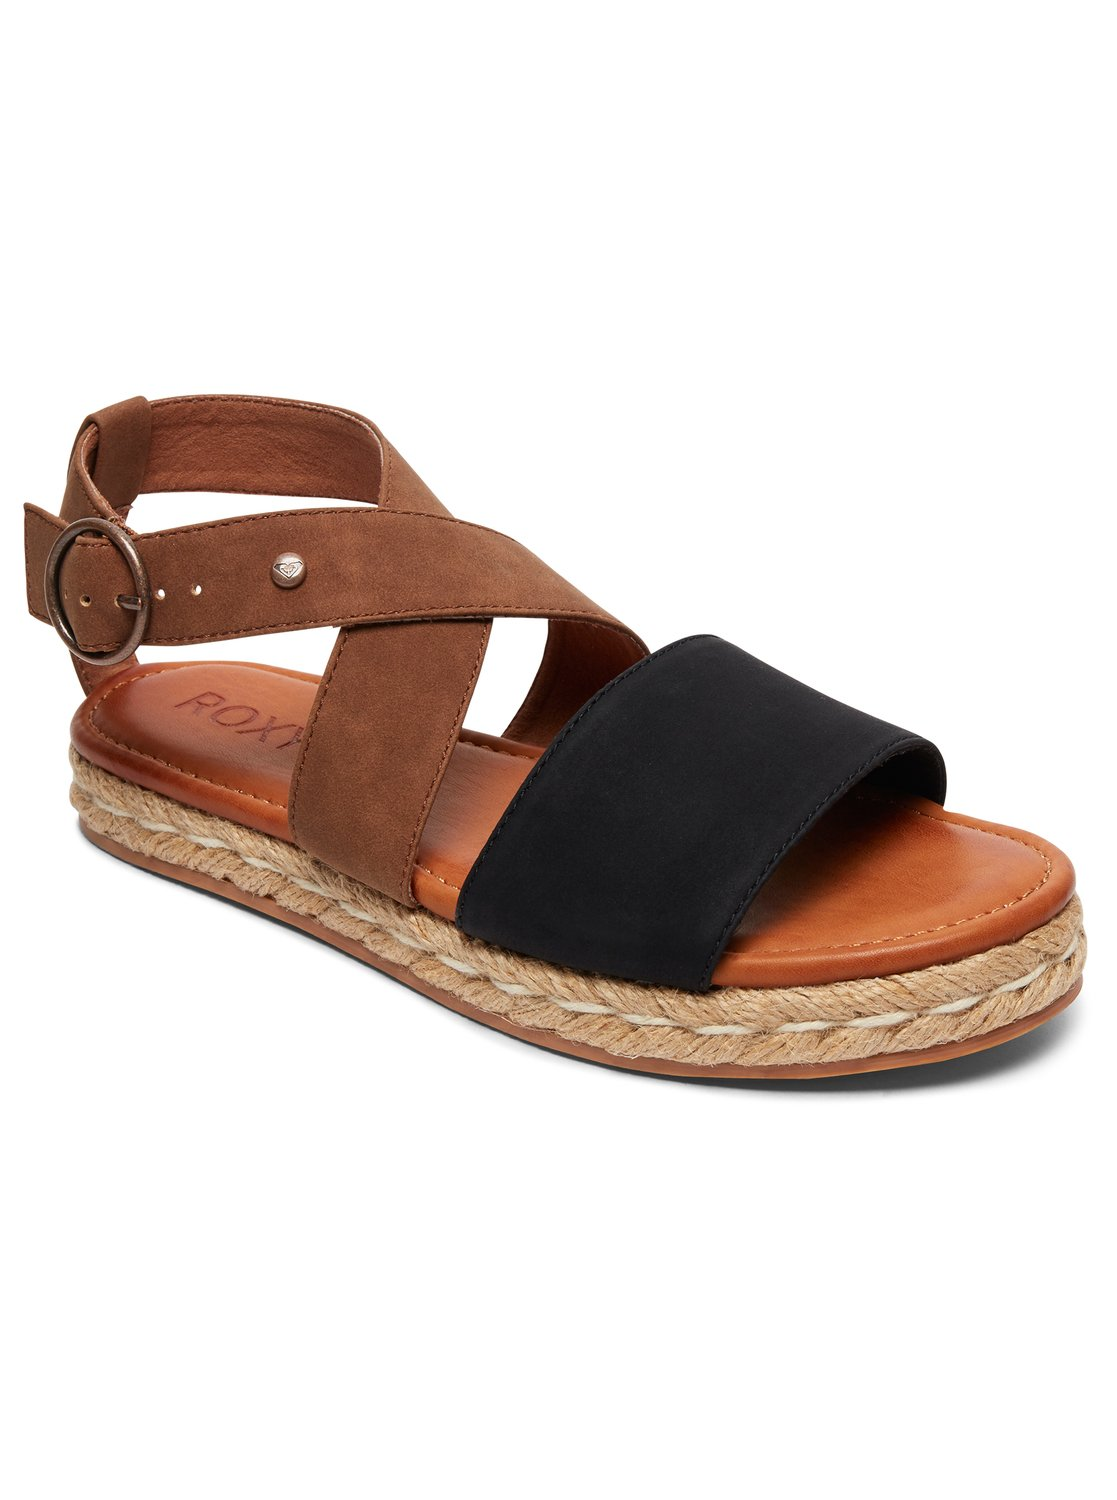 Raysa Sandals Arjl200623 Roxy Tendencies Footbed 2 Strap Brown 41 0